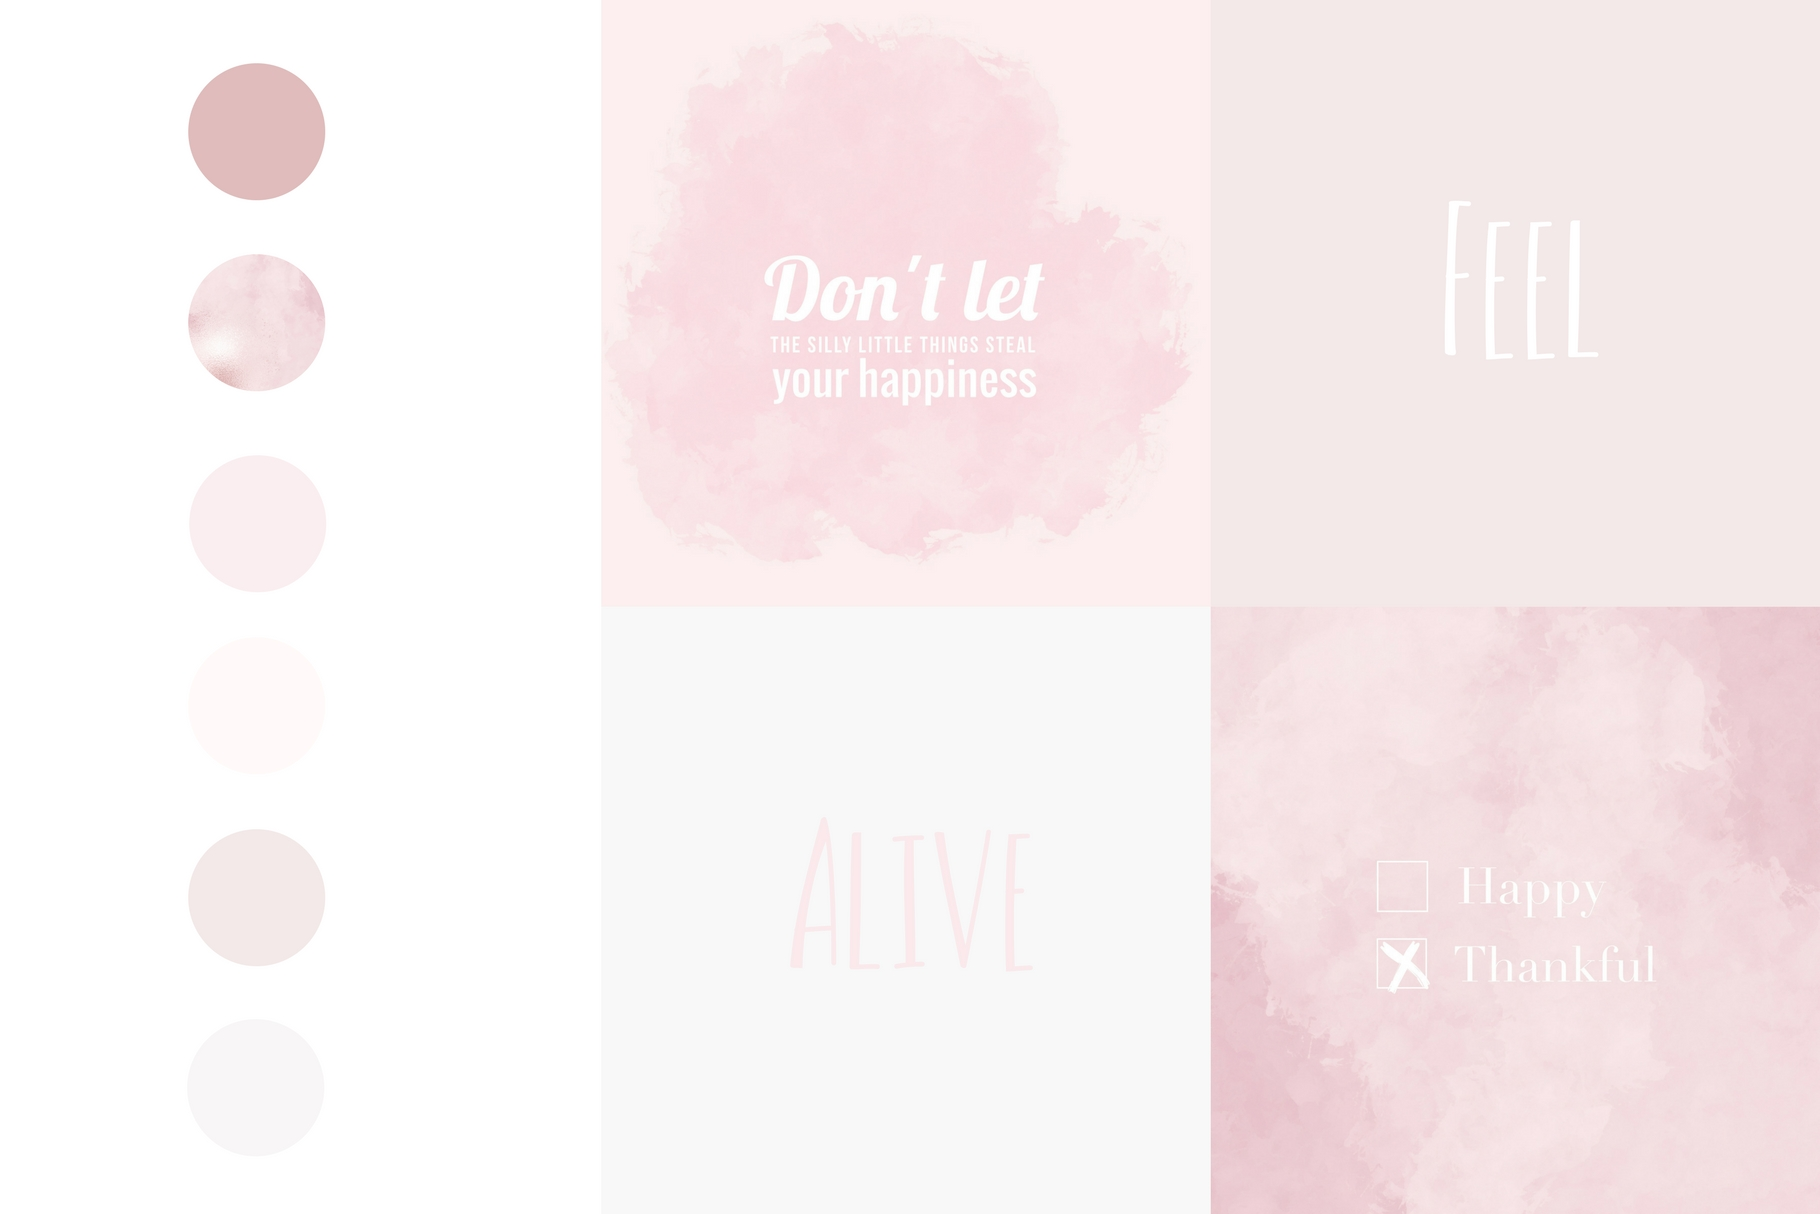 Paint and Pink Textures + Quotes Graphic Textures By Creative Stash - Image 5